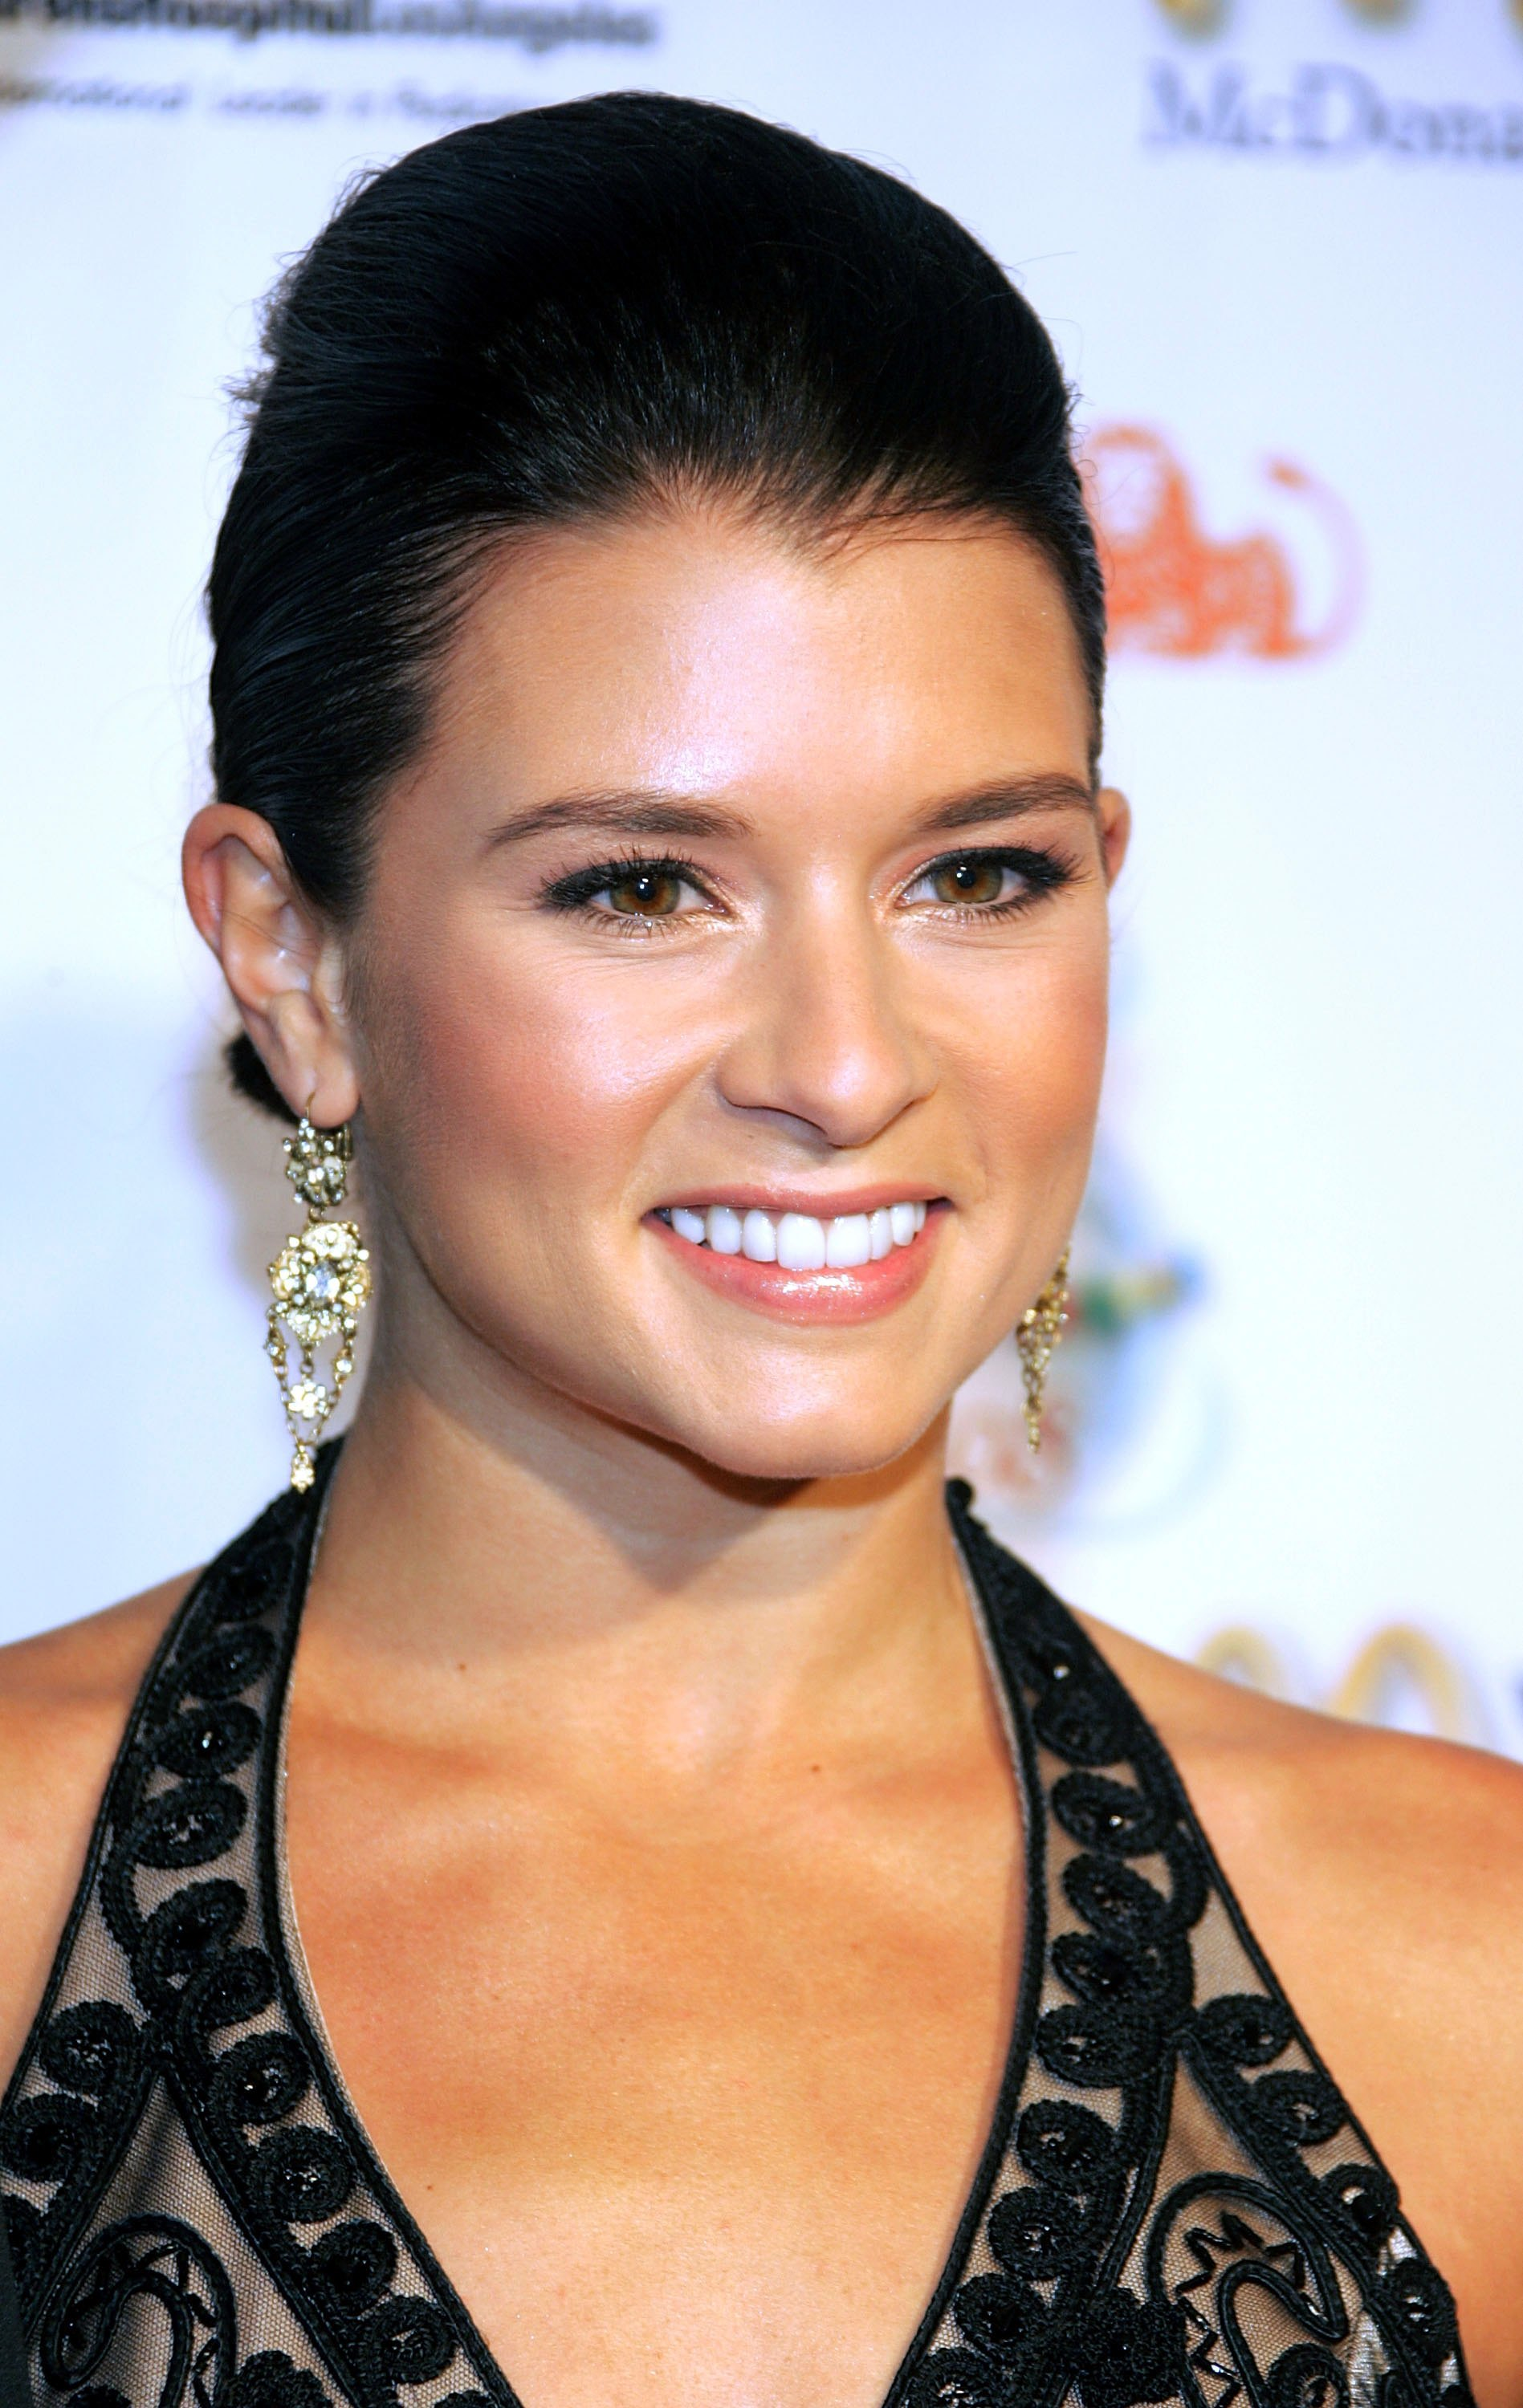 http://allcelebpics.files.wordpress.com/2008/10/danica-patrick001.jpg